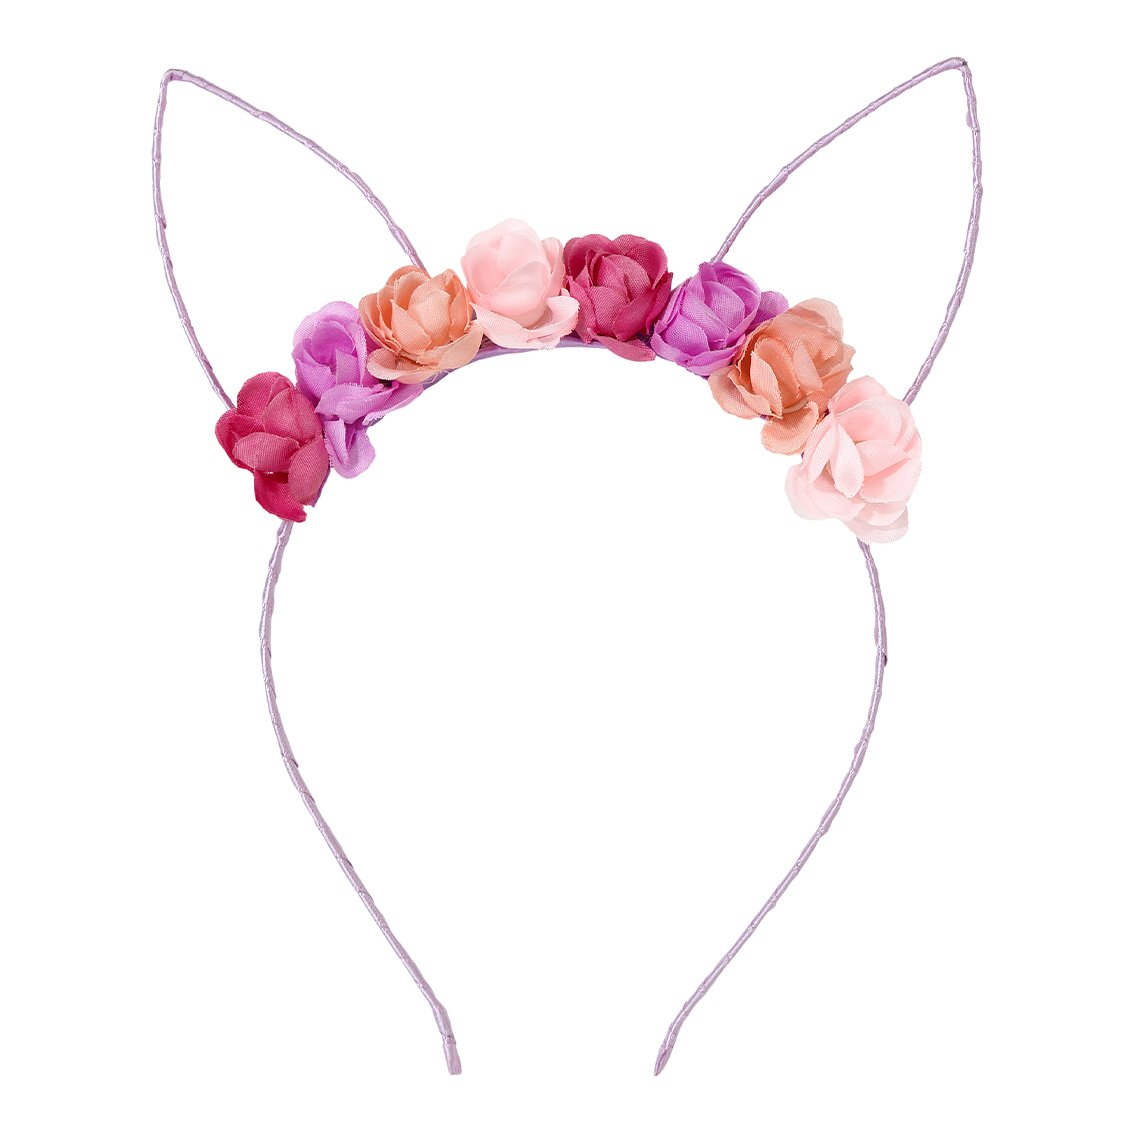 Floral Bunny Ears Headband  | The Party Darling